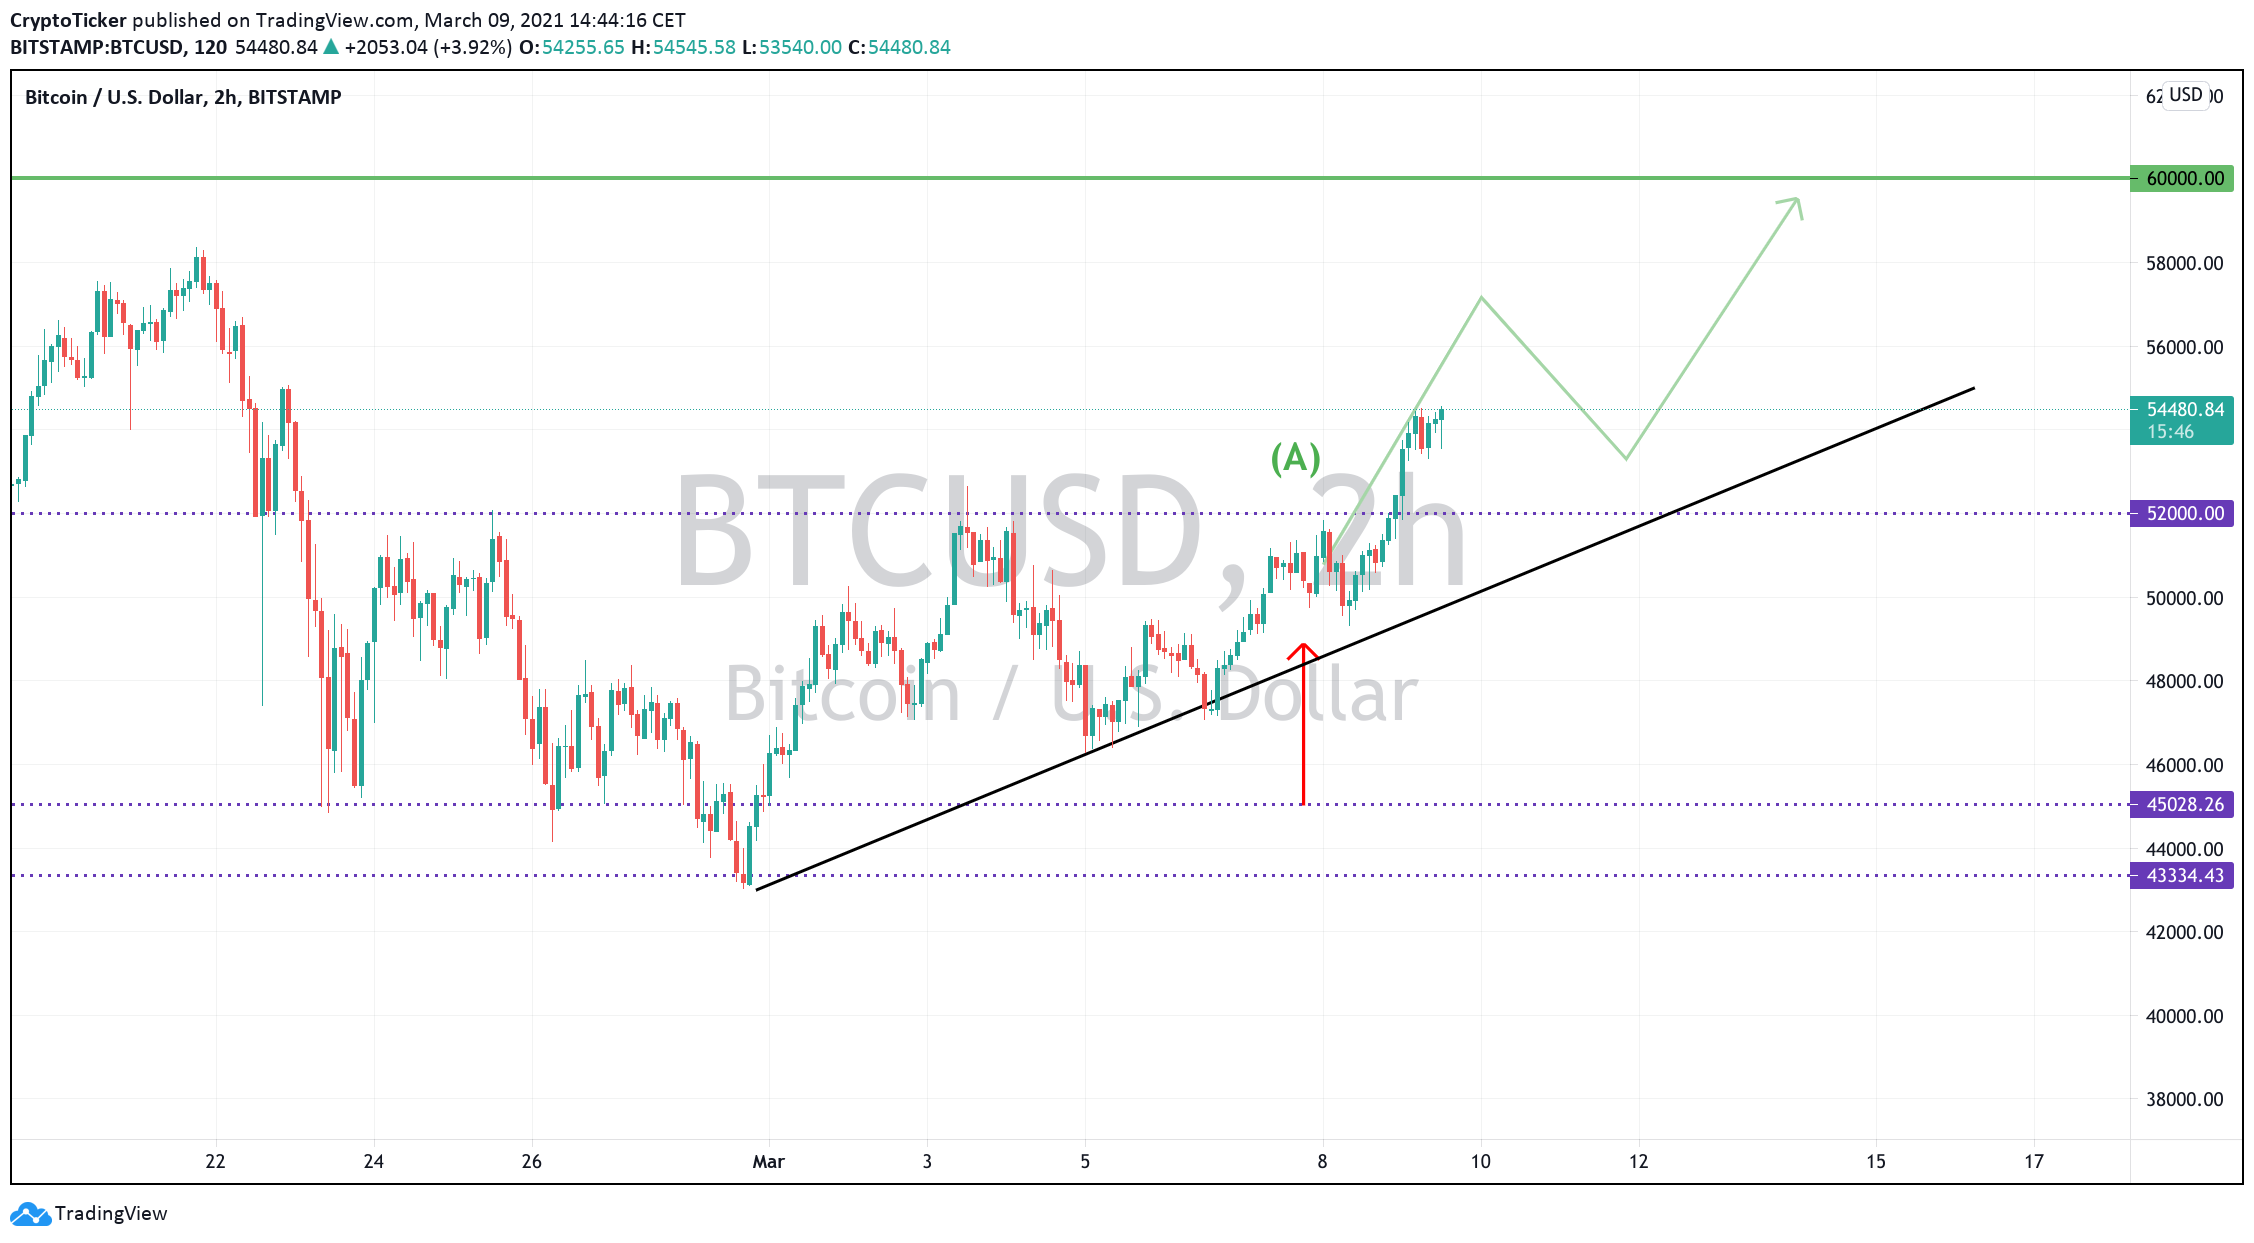 BTC/USD 2-hours chart showing Bitcoin's rising prices